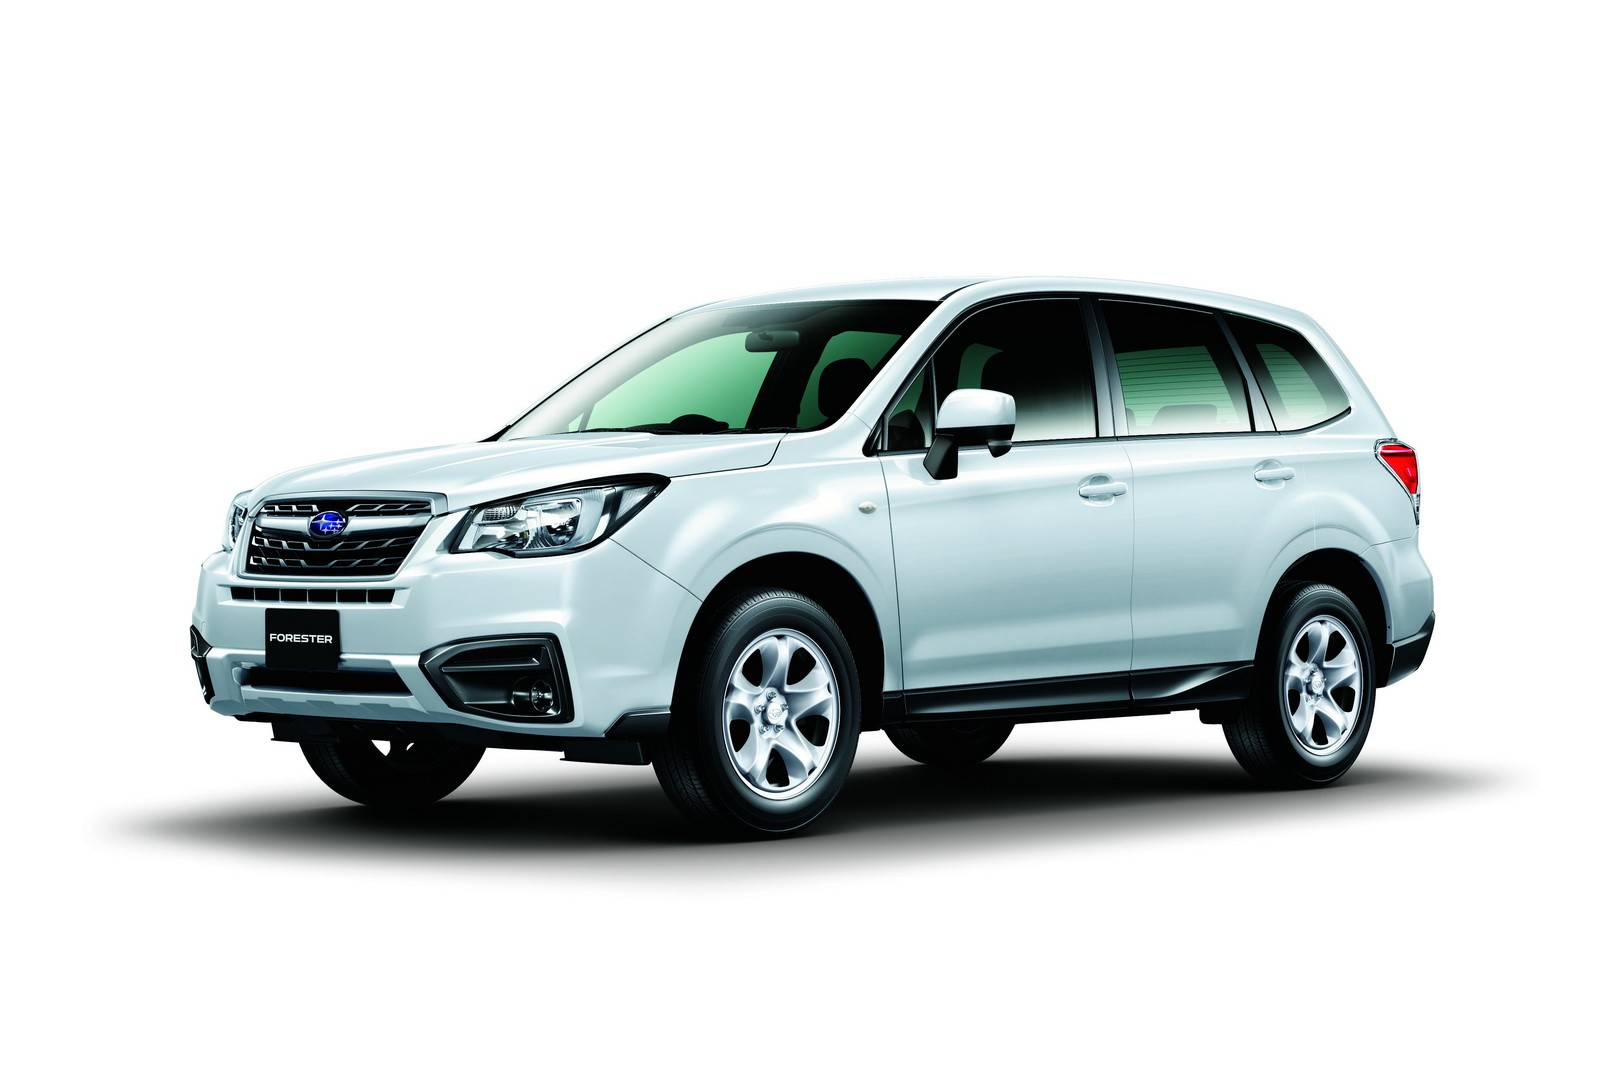 2017 Subaru Forester Facelift Revealed ahead of Tokyo Motor Show Debut ...